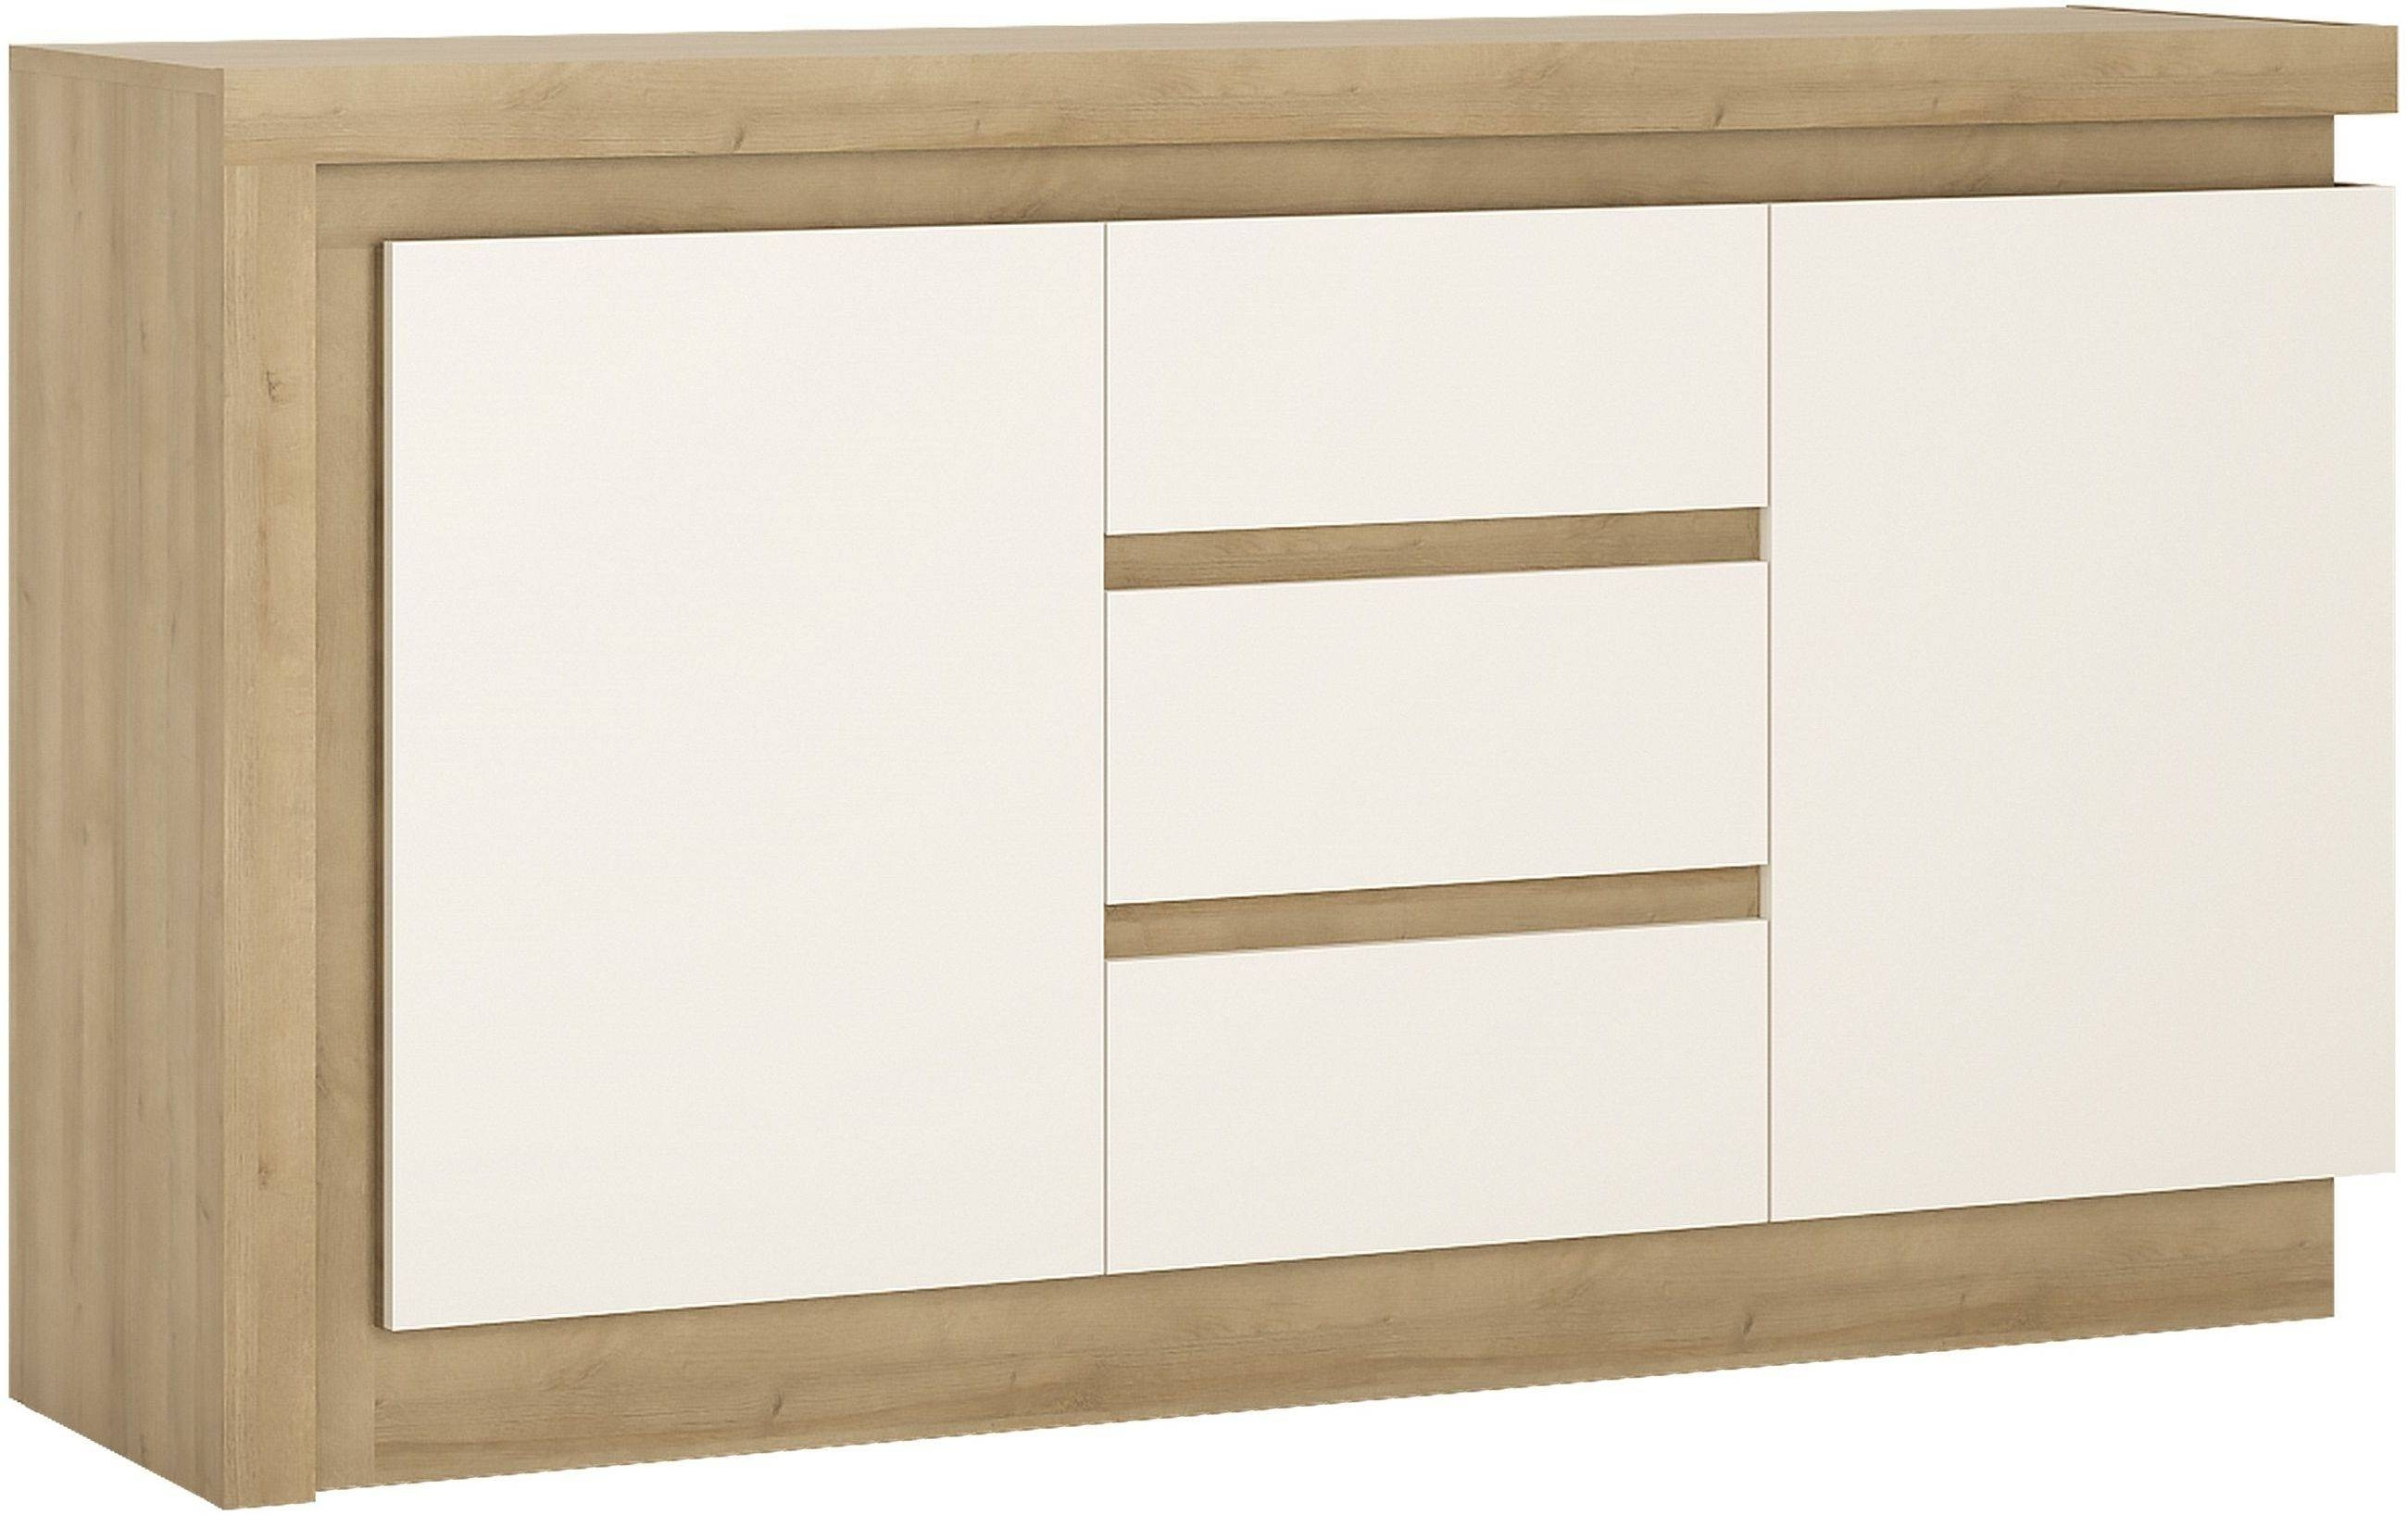 Buy Lyon Riviera Oak And White High Gloss Sideboard - 2 Door 3 pertaining to Cheap White High Gloss Sideboards (Image 3 of 30)